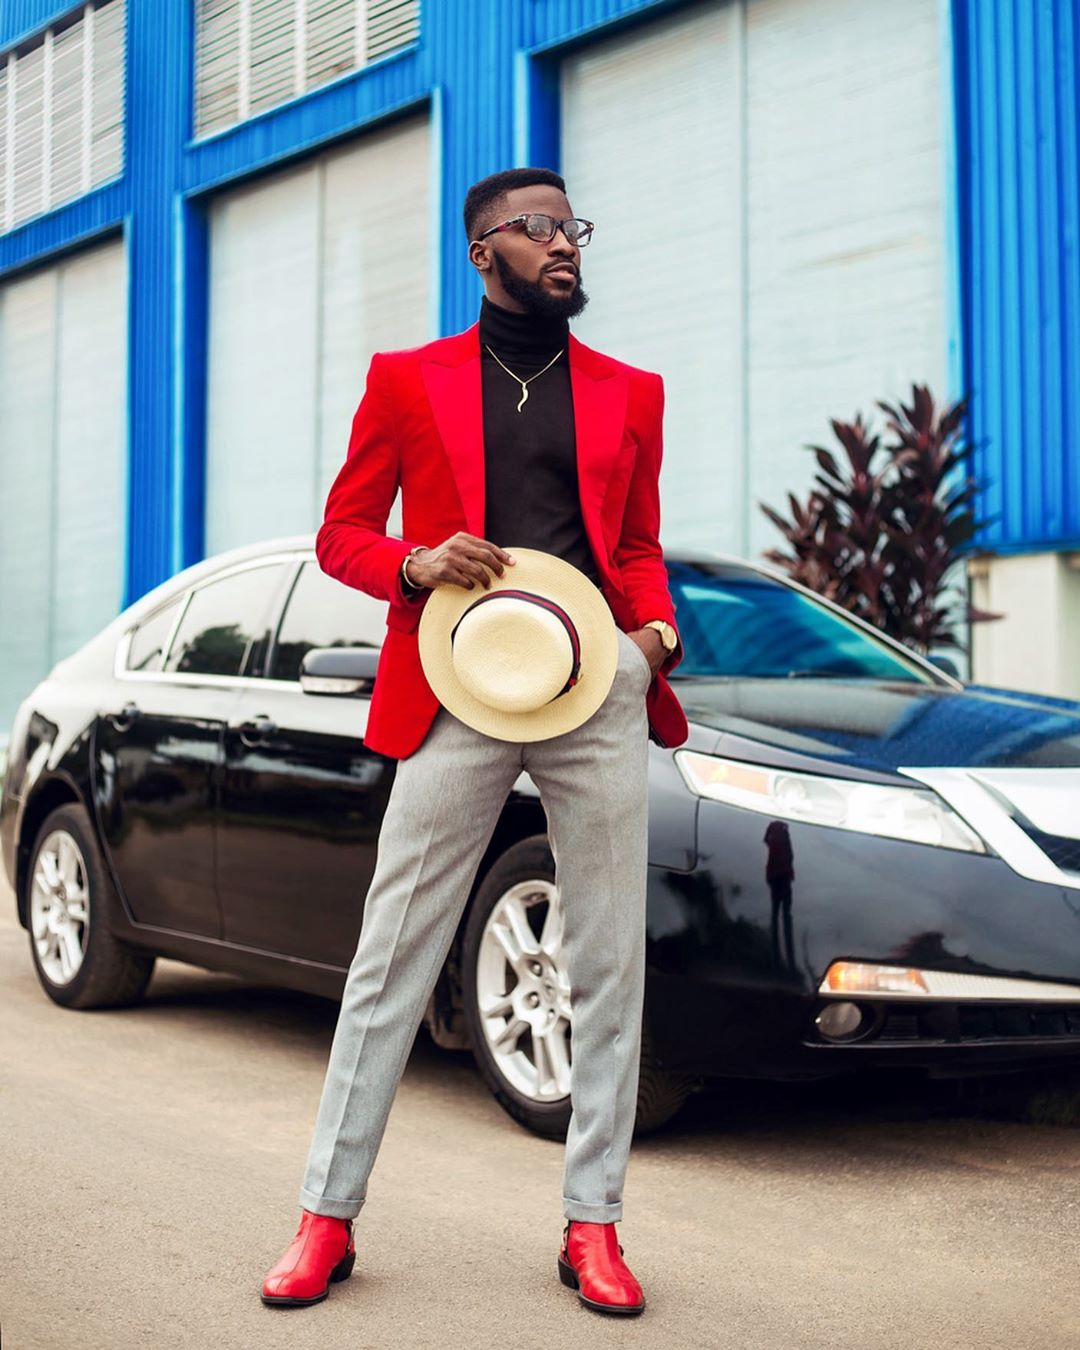 africa-male-celebrities-african-best-dresses-hottest-most-fashionable-stylish-style-rave